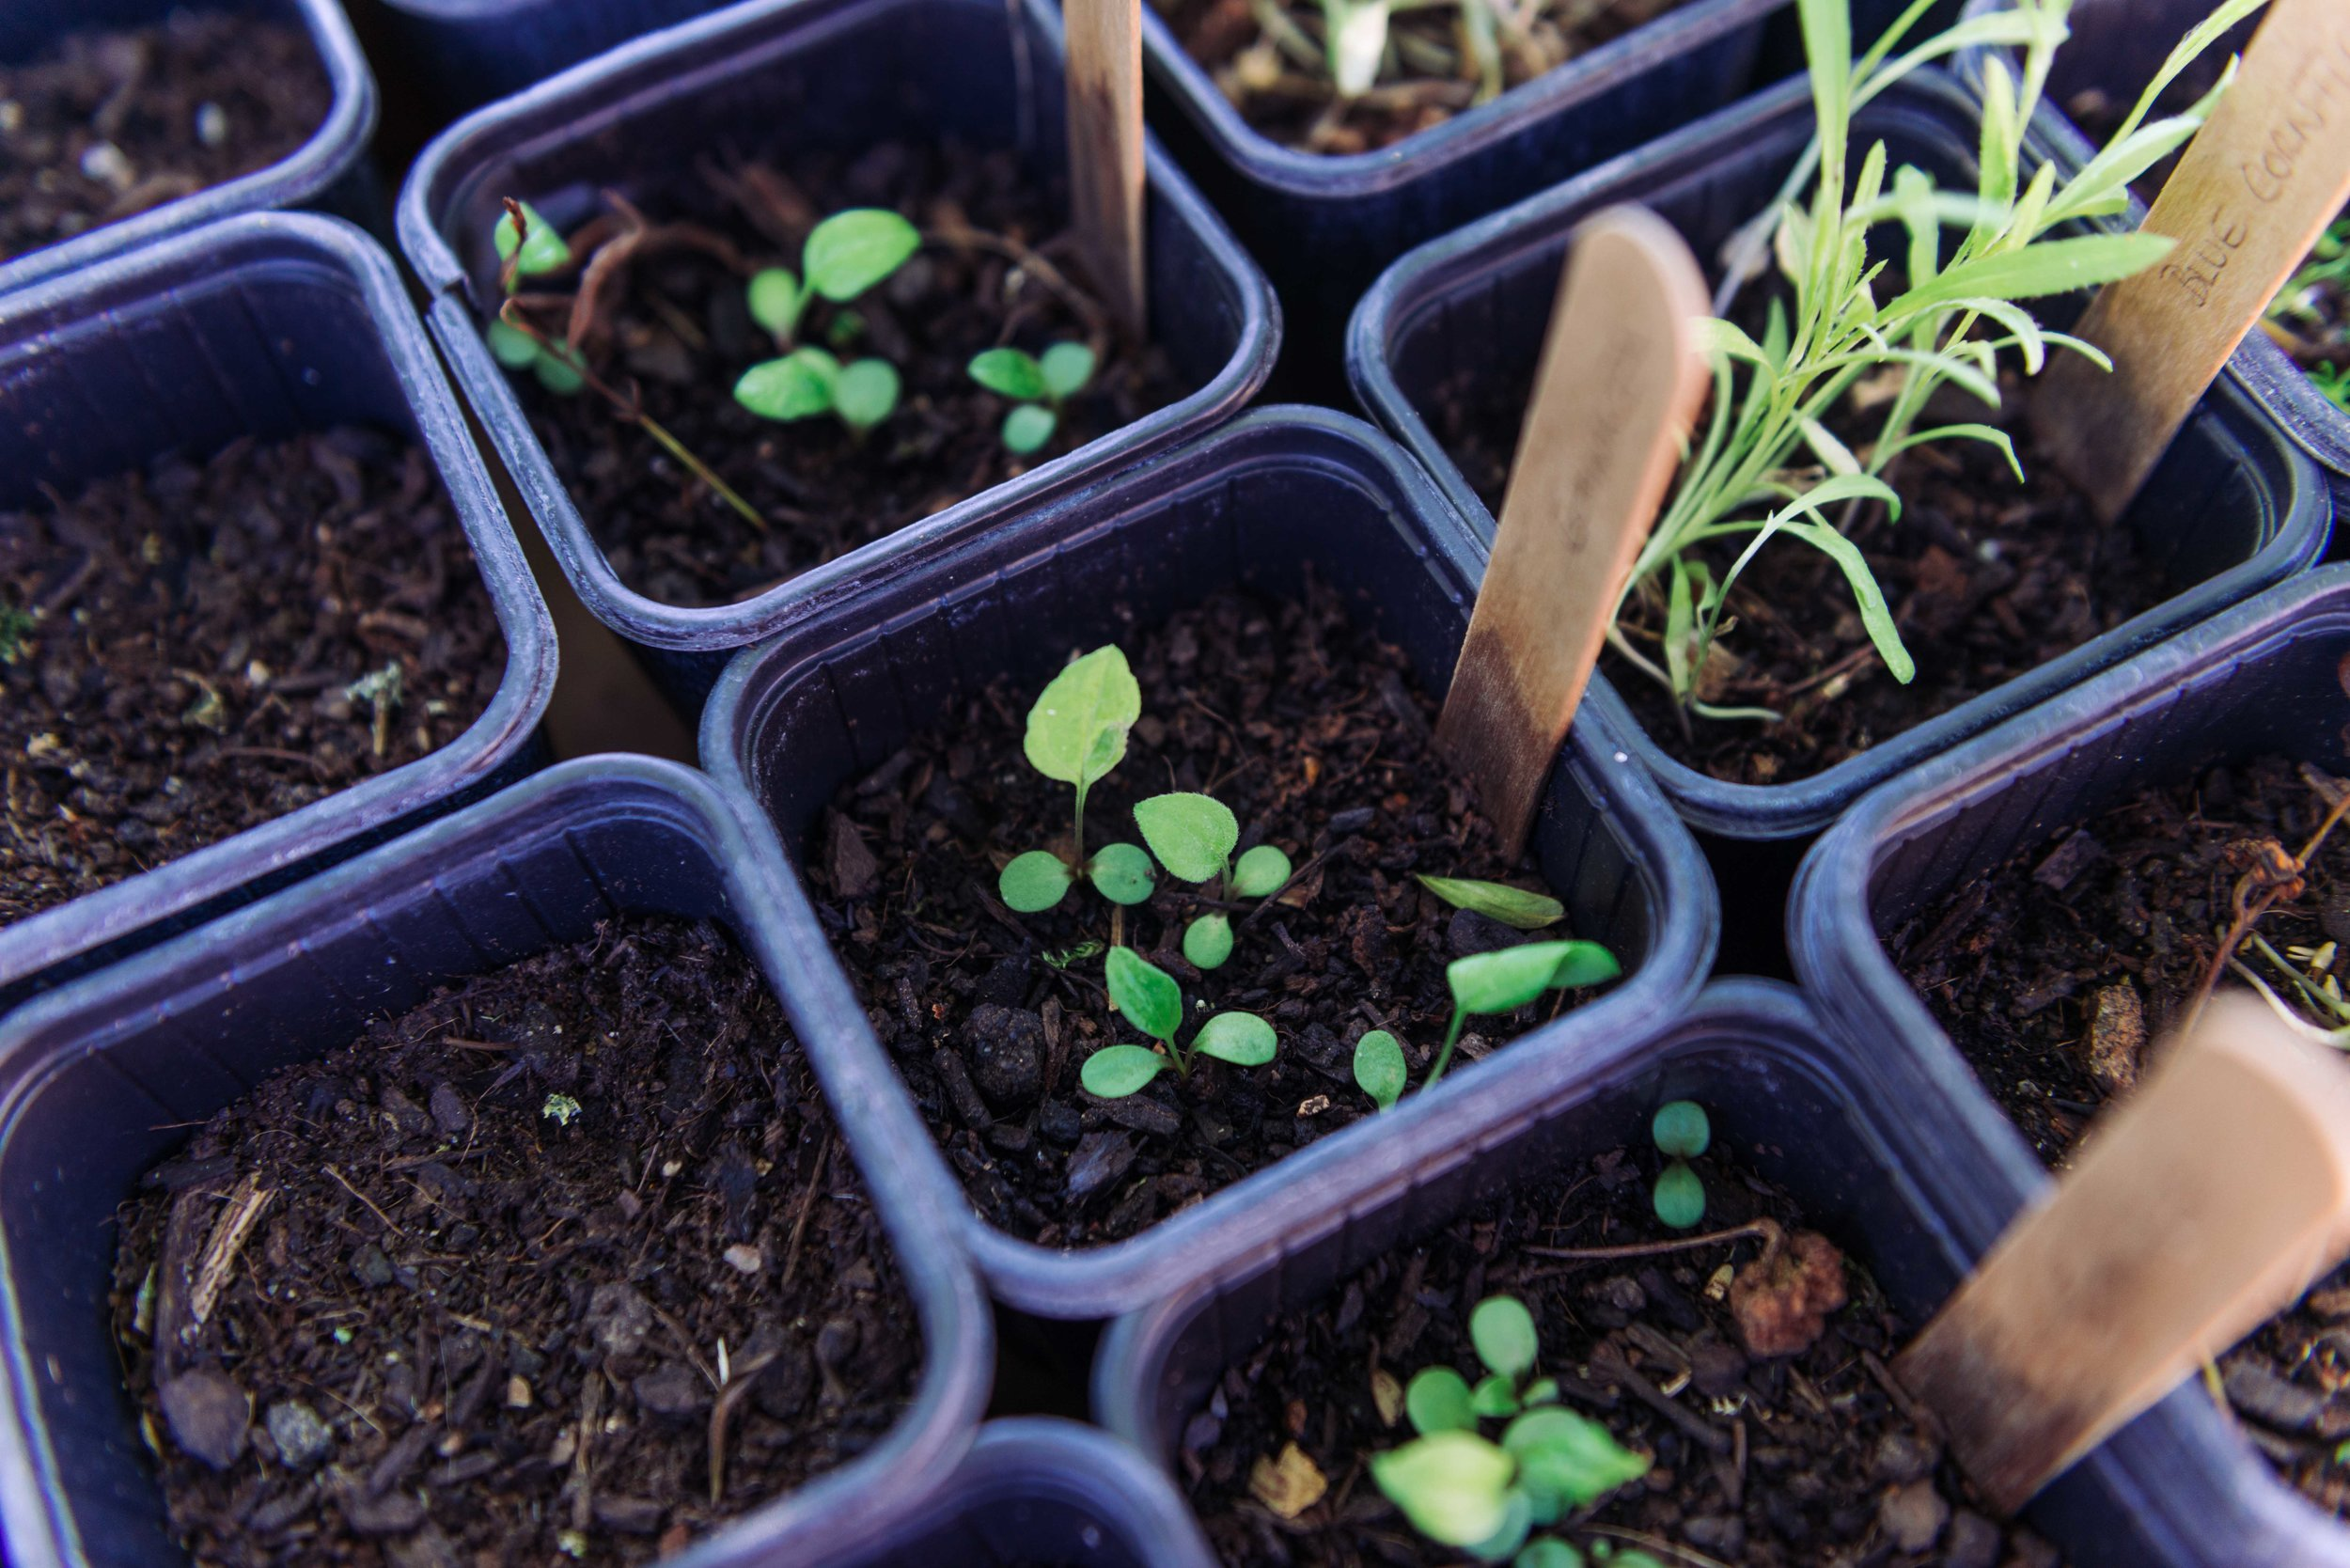 Seedlings of echinacea, blue cornflower, and chamomile